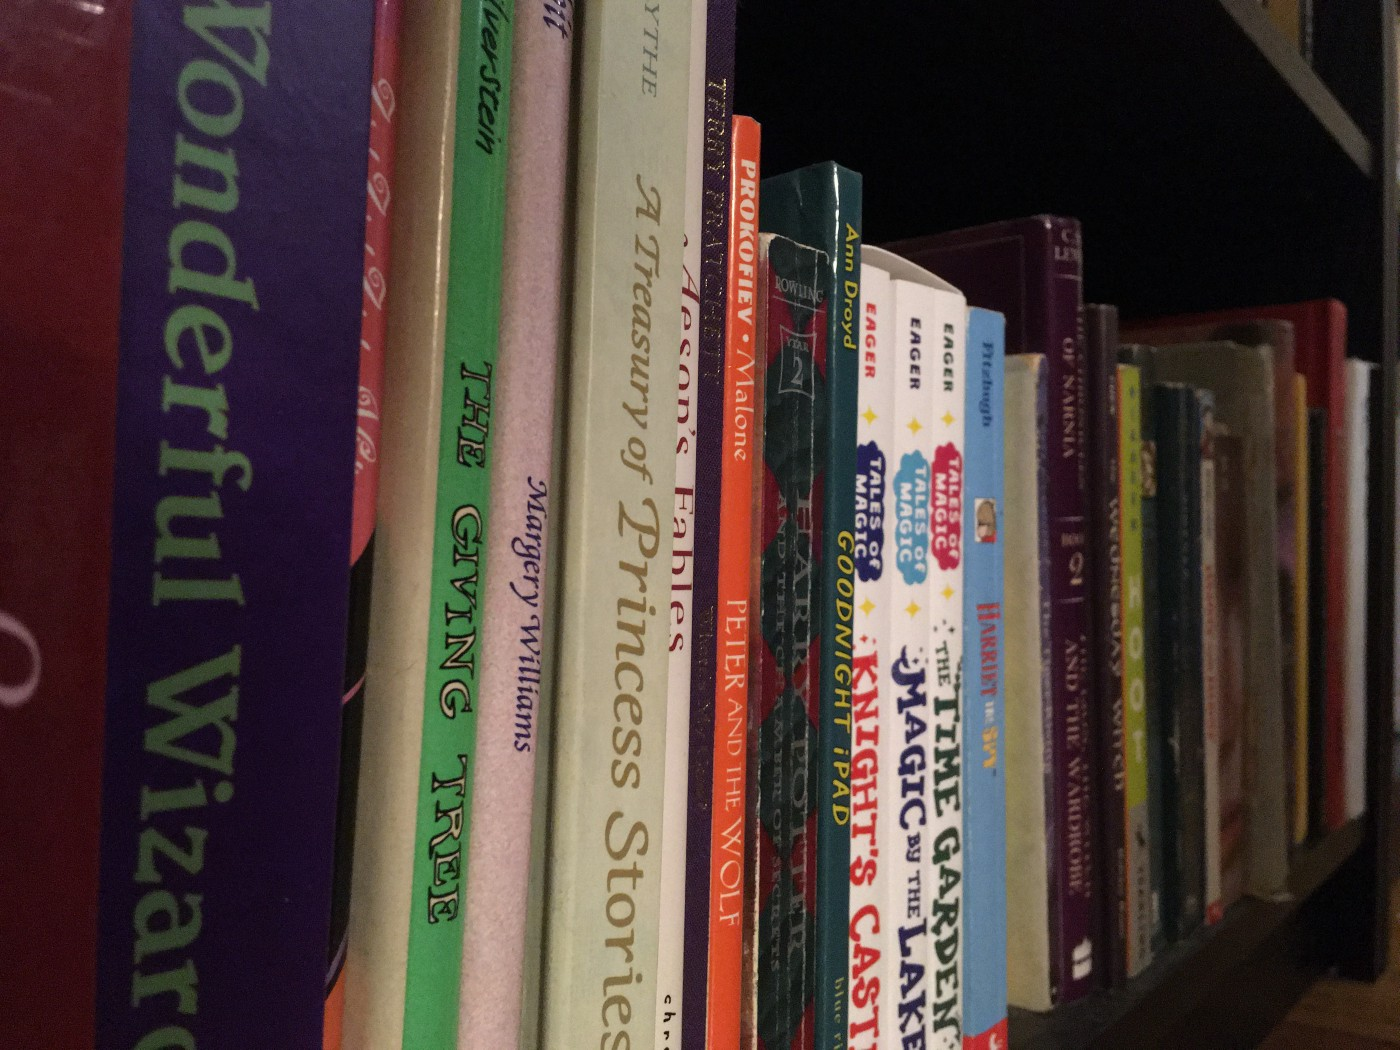 lots of old children's book spines on a bookshelf, needs dusting